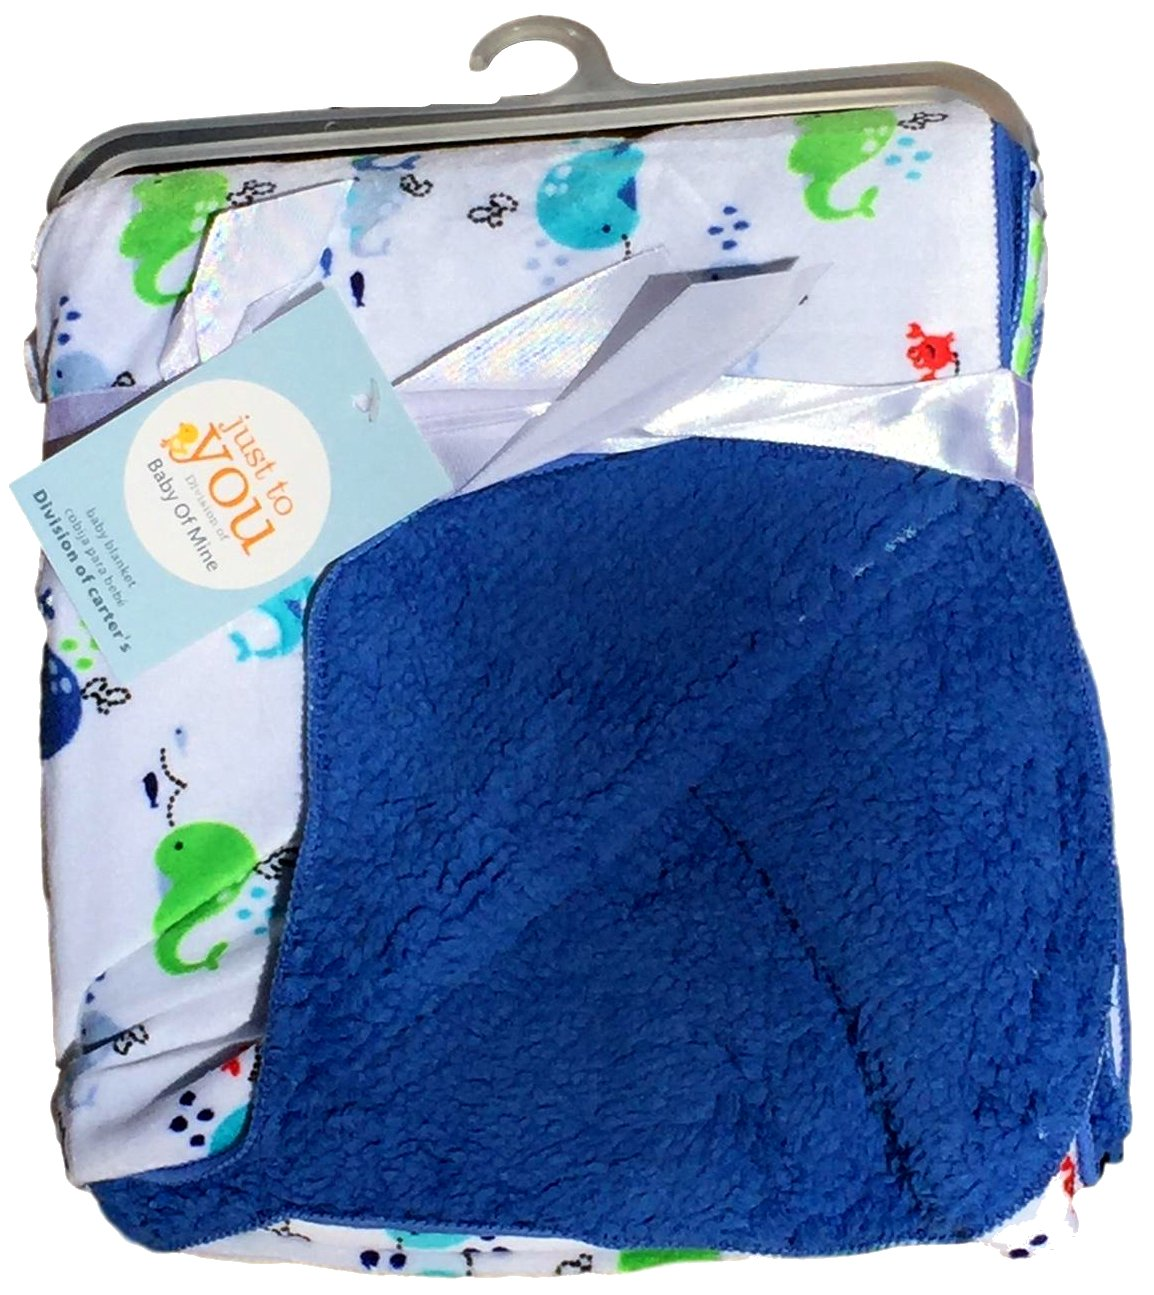 Baby Blankets For Boys, Warm and Cozy, Extra Soft Micro Plush Fleece Blanket, Anti-Pilling, Sherpa Backing (Whales)